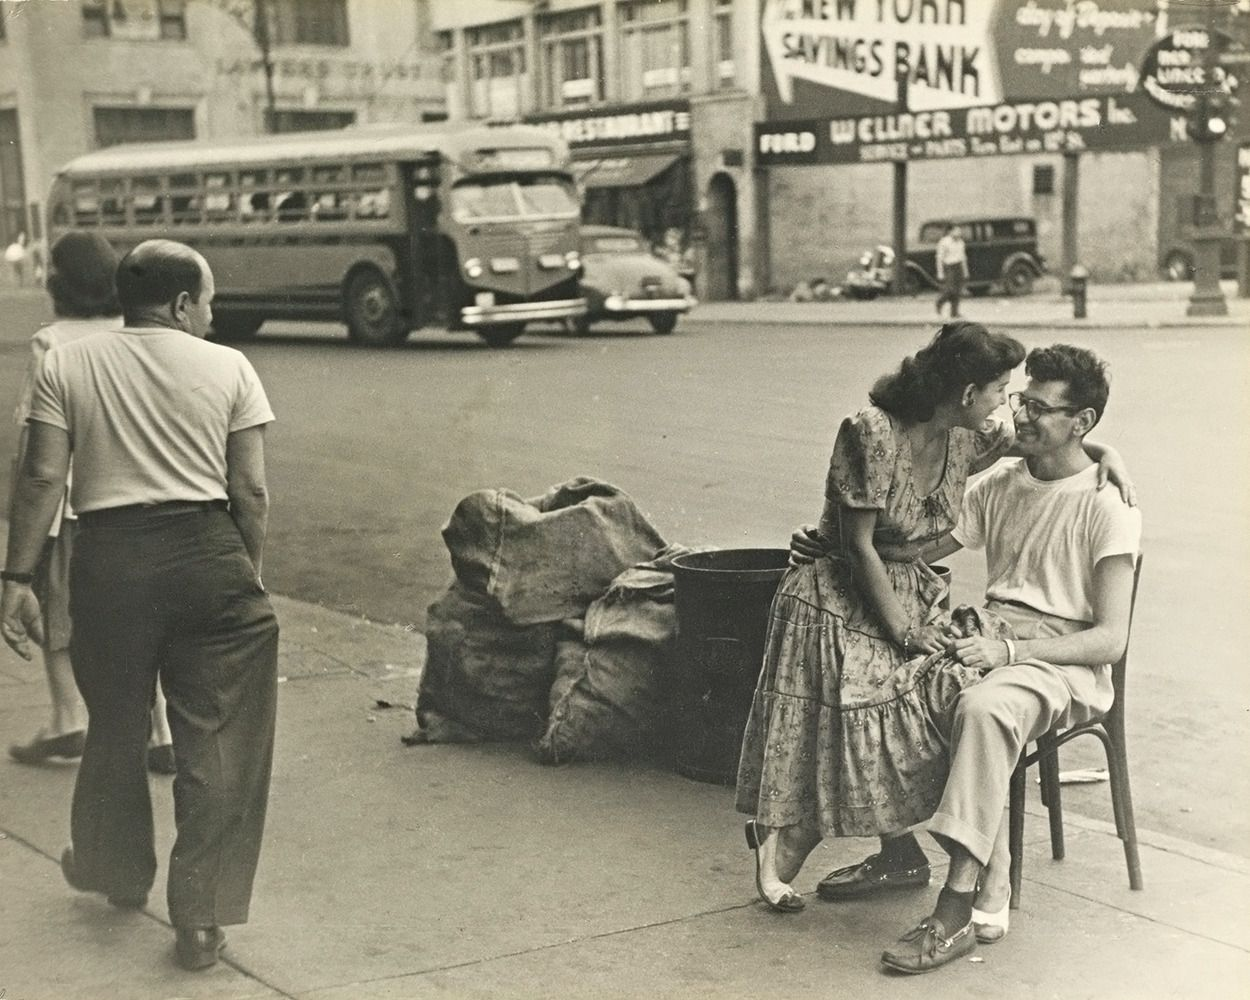 vintage everyday: Couple in front of their candy store in New York City, 1949